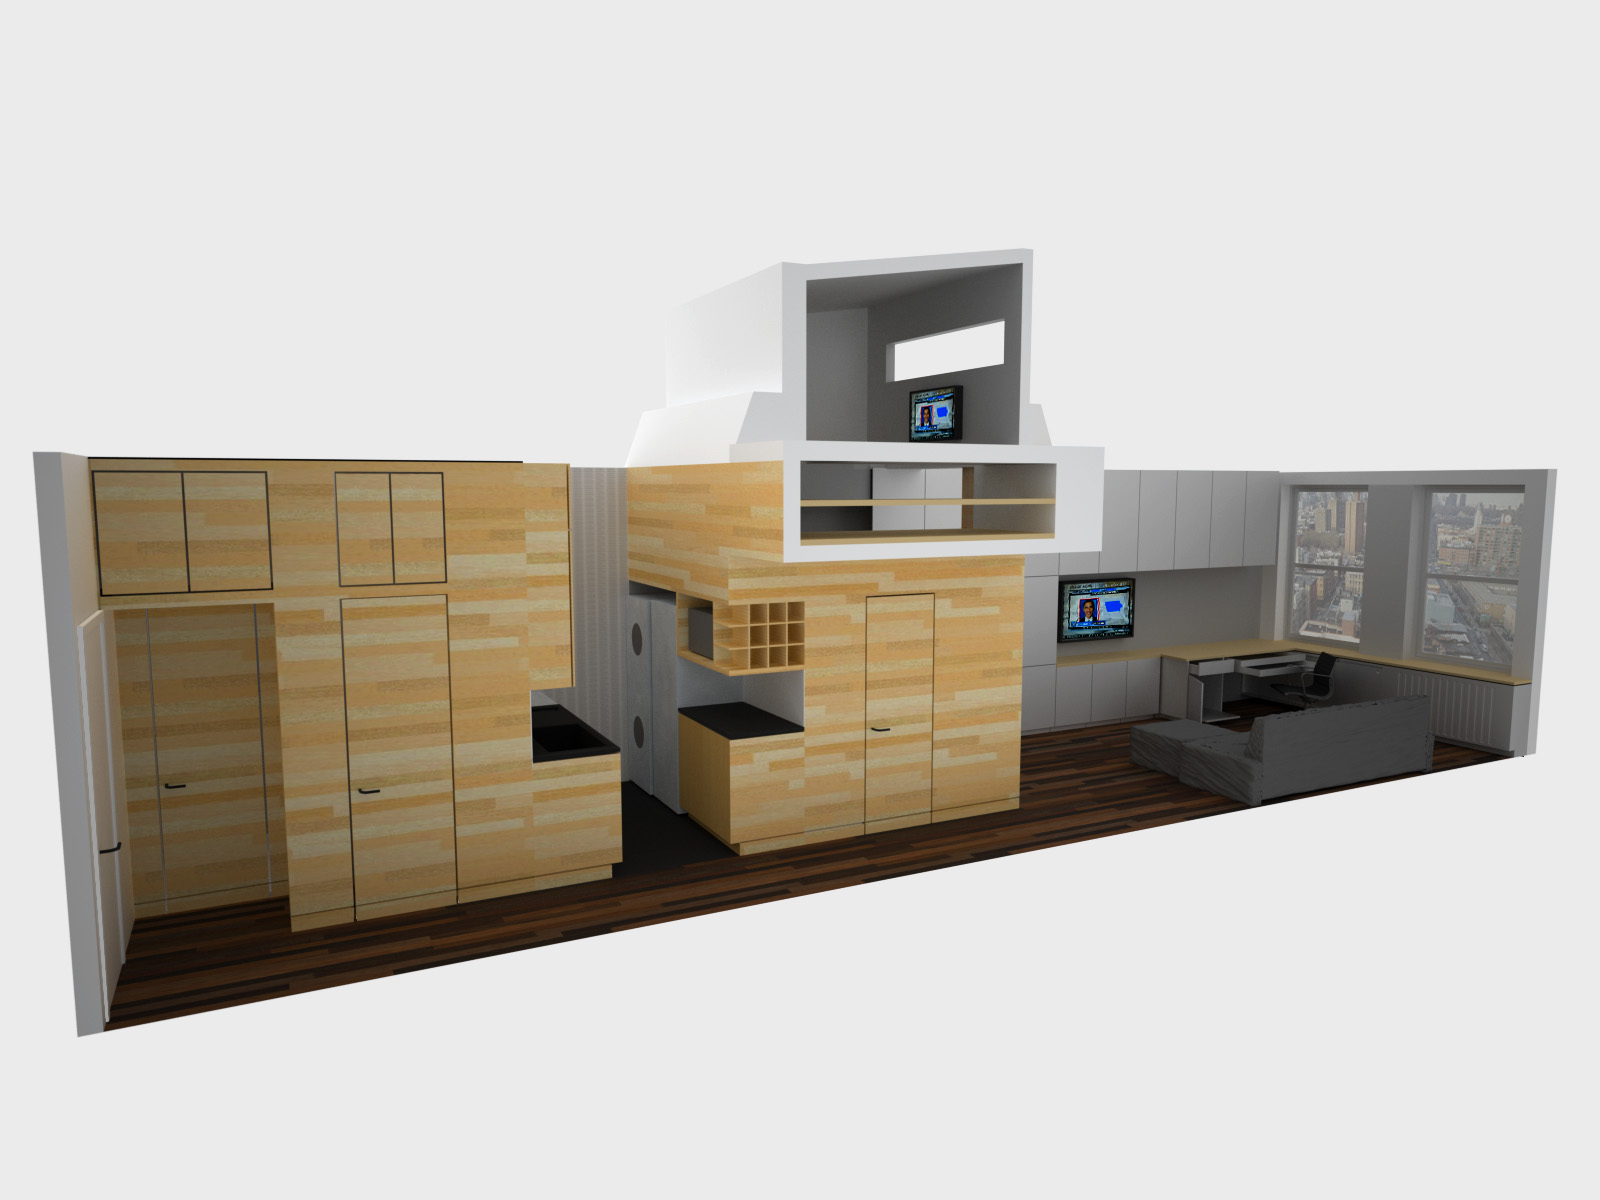 Groovy Space Saving Tiny Apartment New York Largest Home Design Picture Inspirations Pitcheantrous